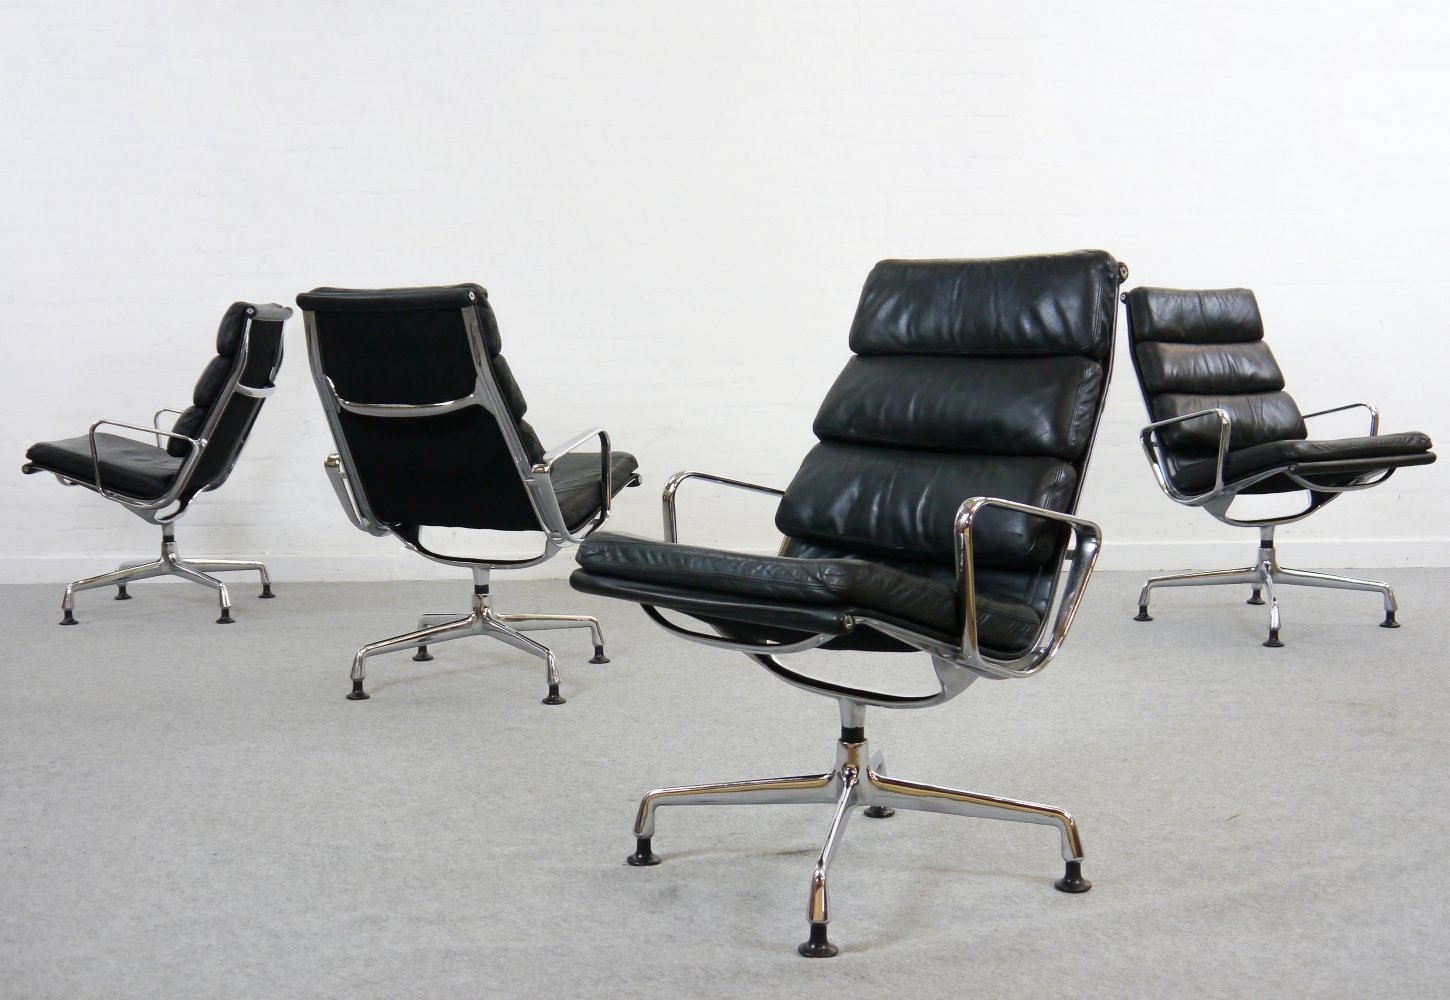 Charles Eames Soft Pad Chairs EA 216 by Herman Miller/Fehlbaum in Black Leather